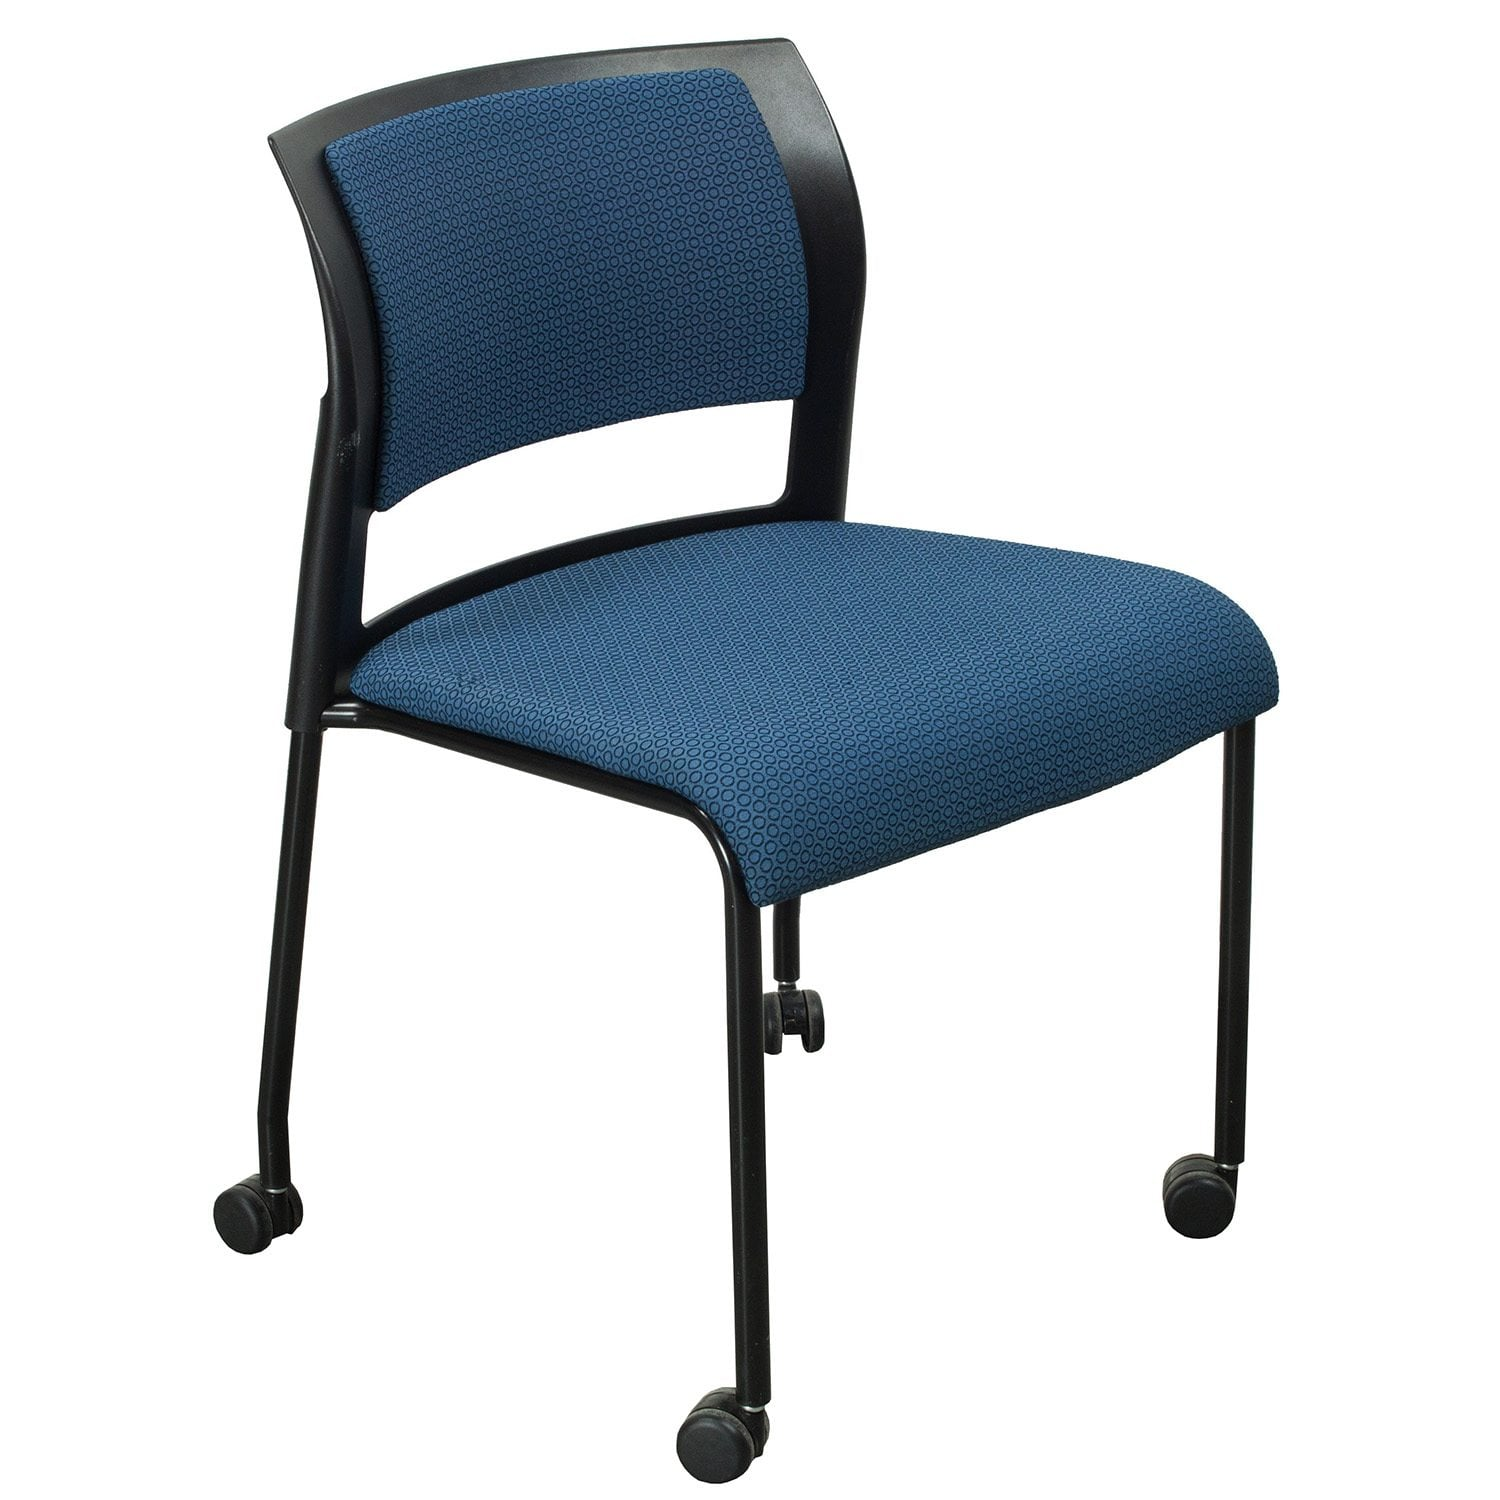 Moving Chair Steelcase Move Used Mobile Chair Blue National Office